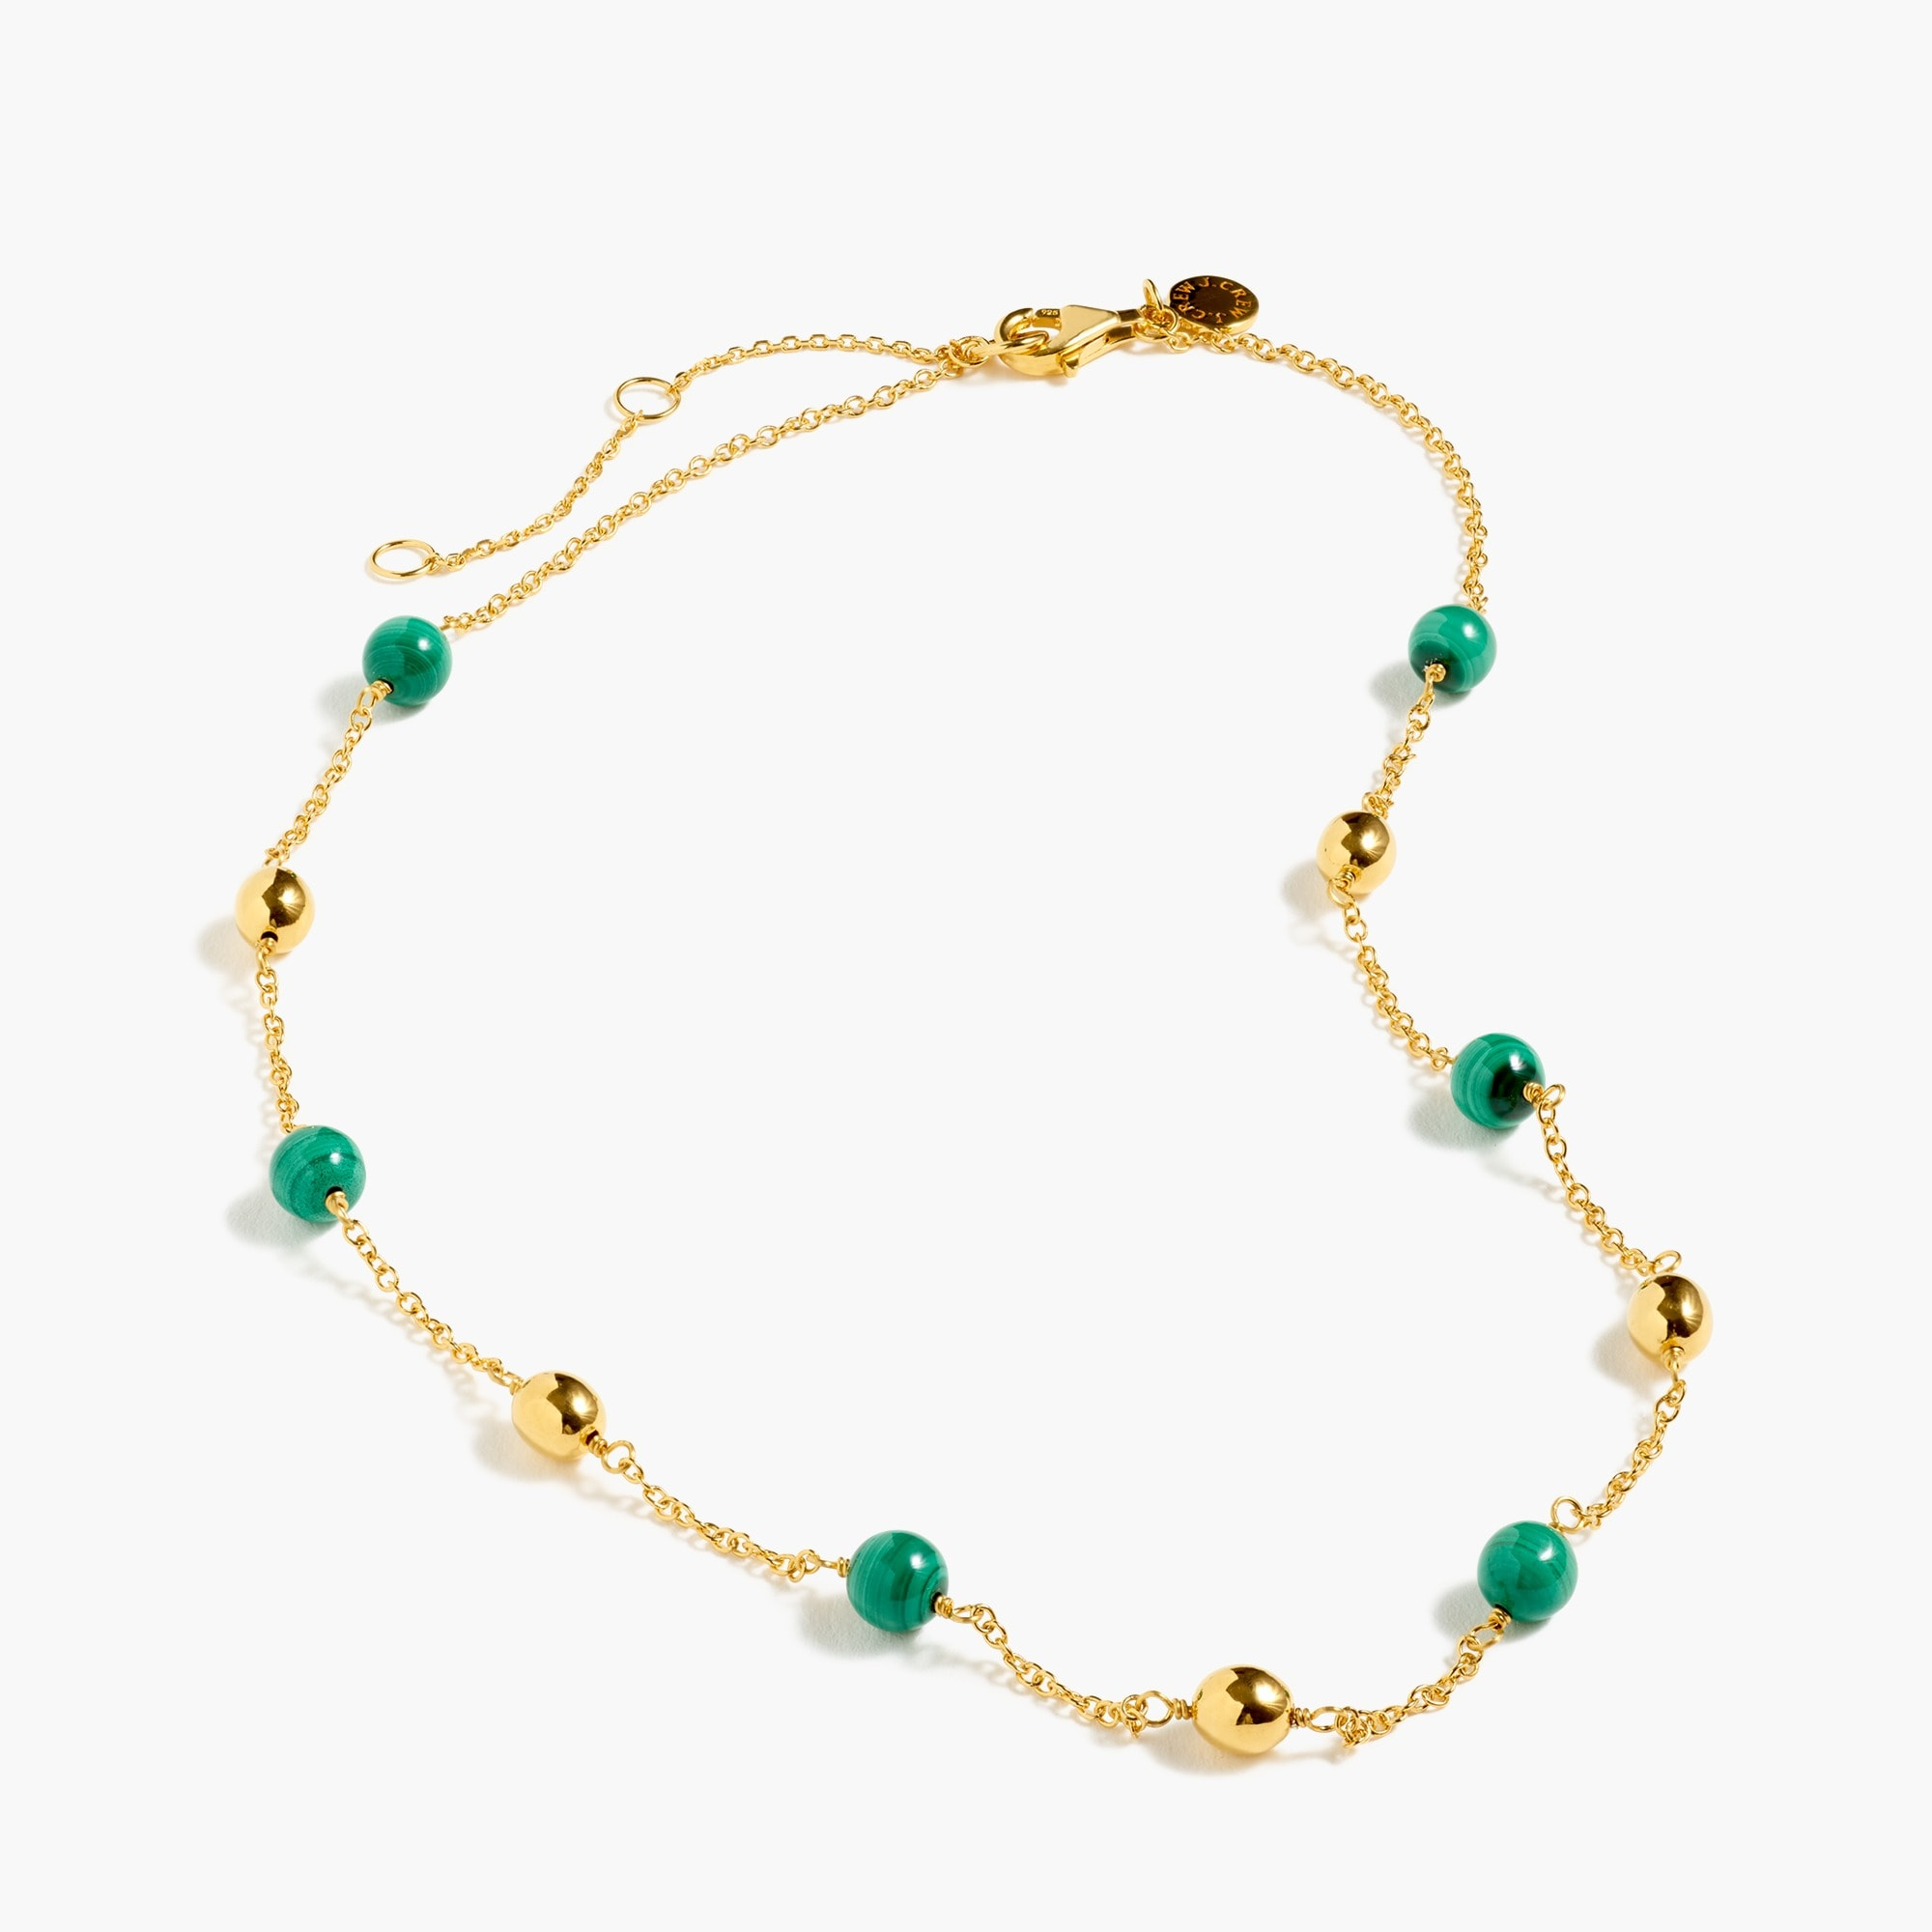 womens Demi-fine 14k gold-plated malachite beaded necklace